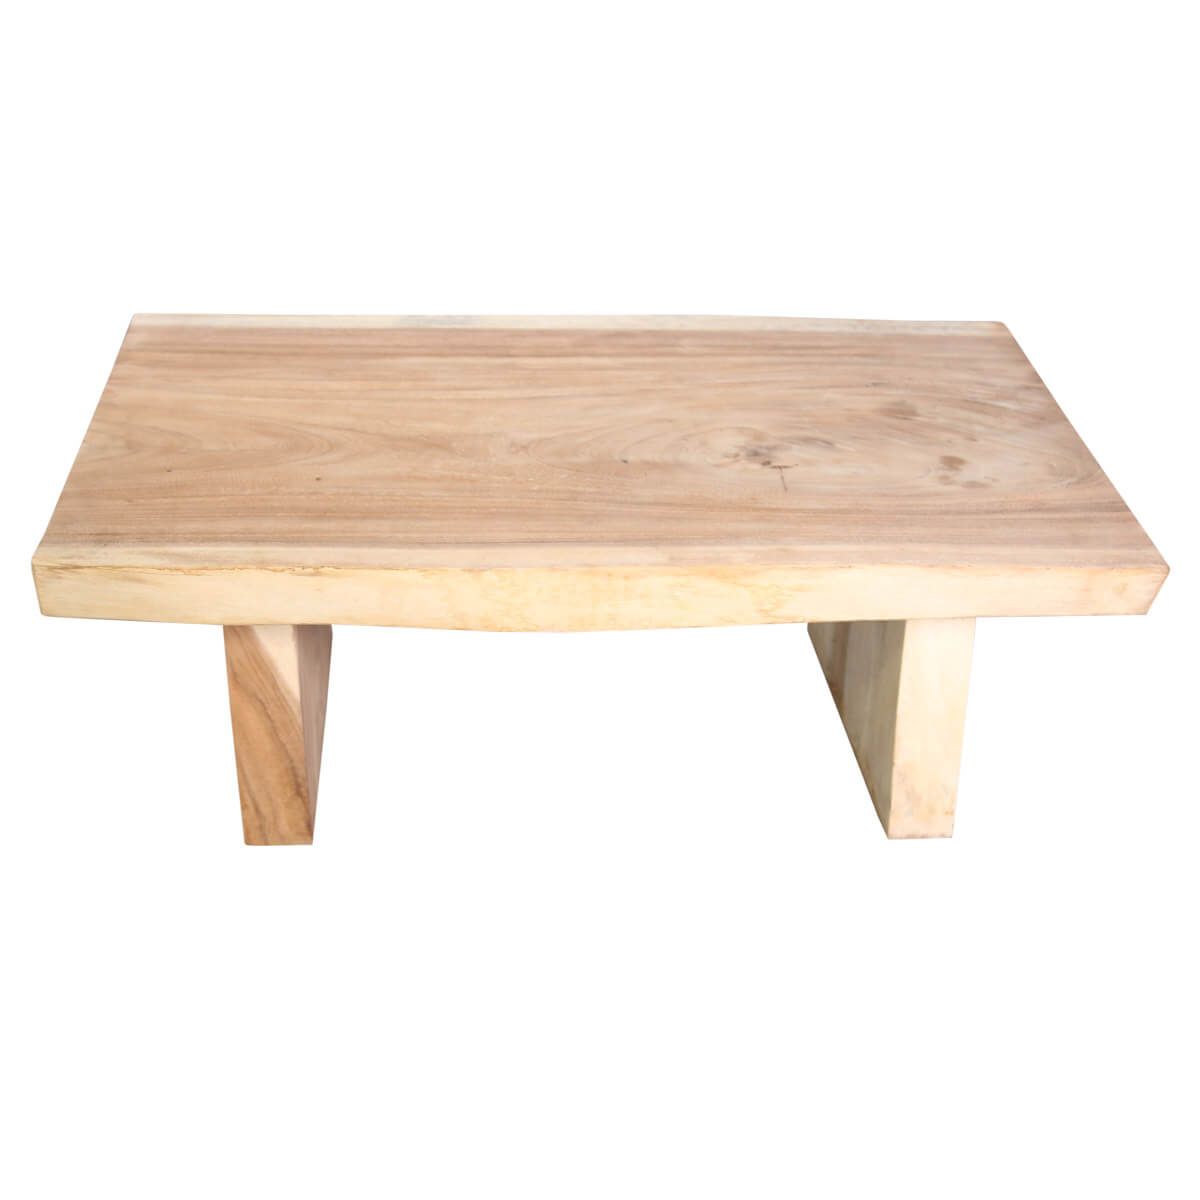 Silvis Natural Solid Wood Live Edge Coffee Table